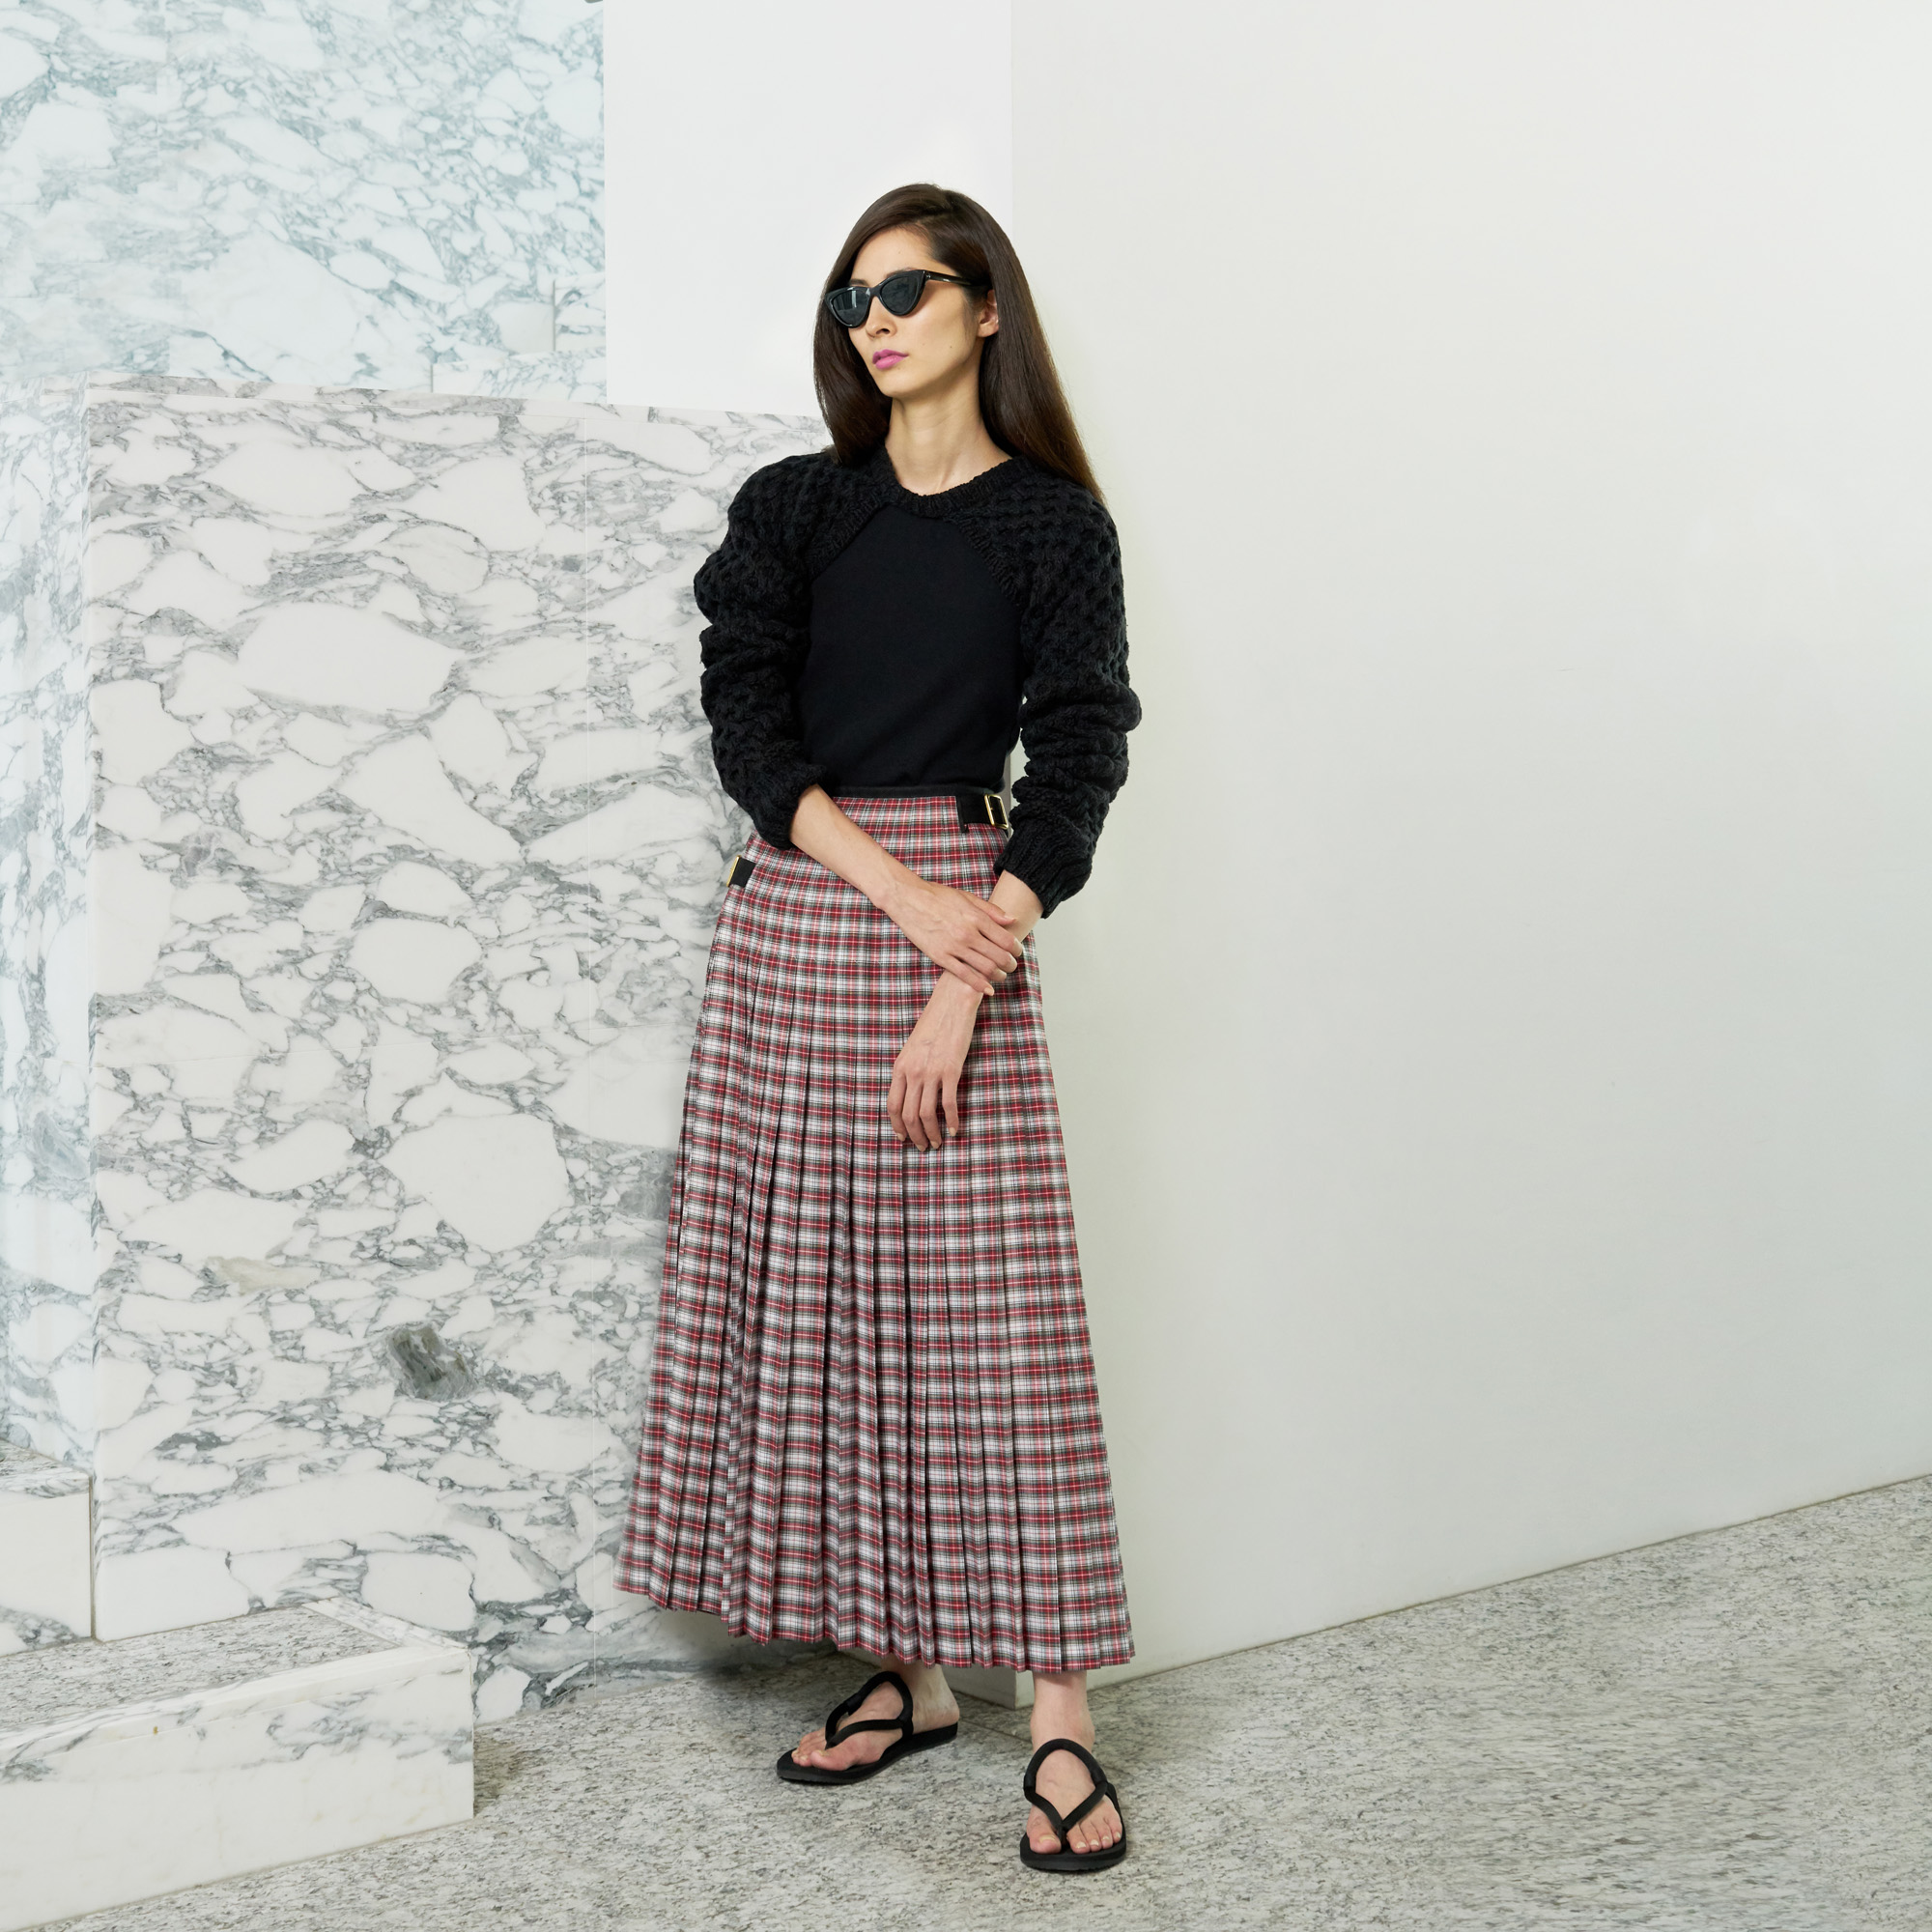 Hand Knit sleeve・Milan rib tank top・Checked maxi length skirt